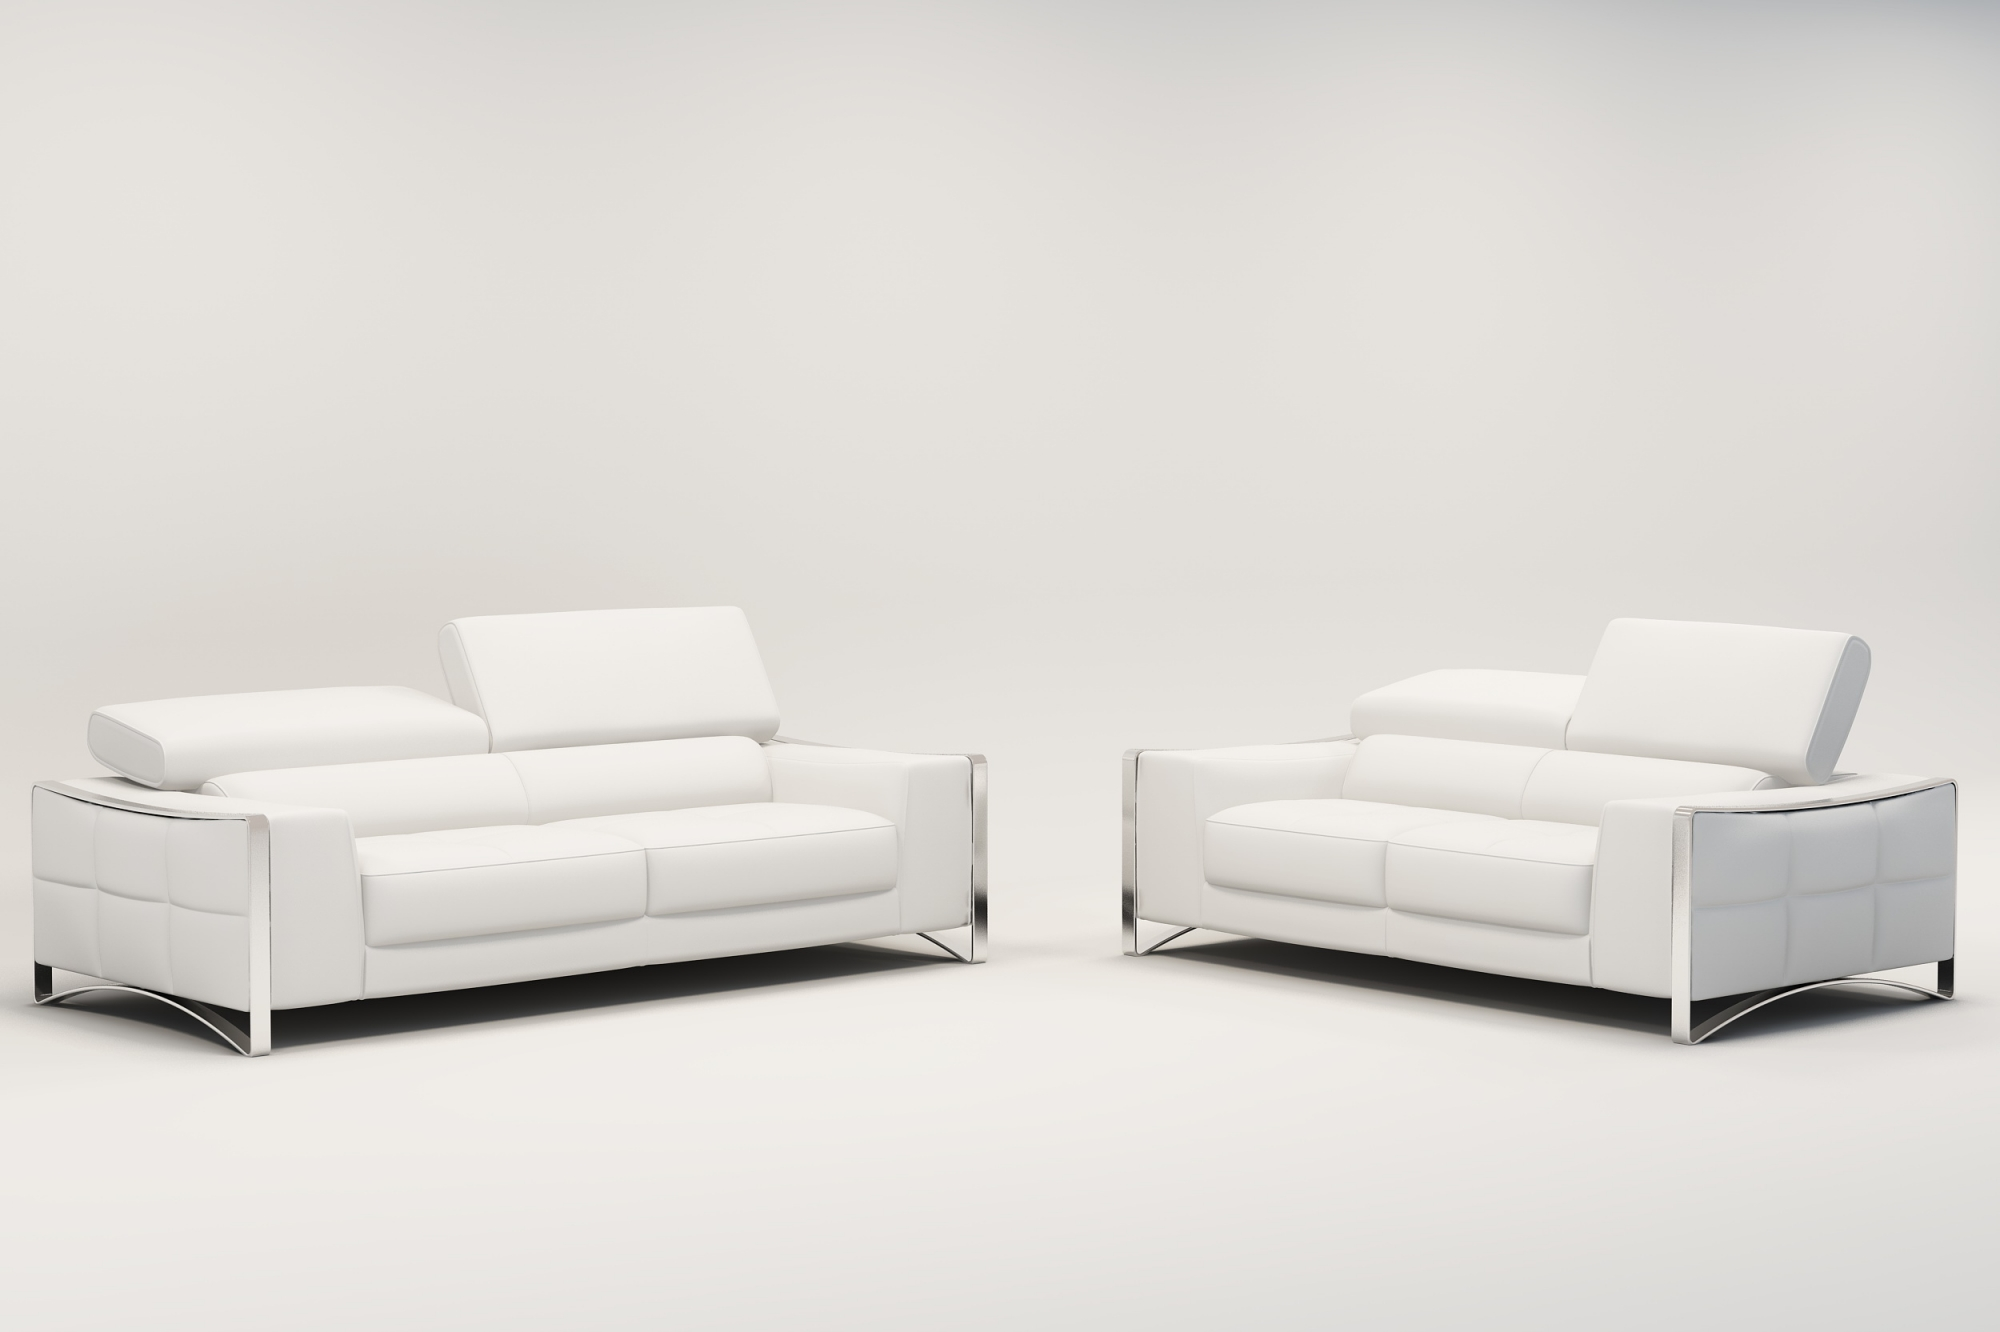 canap cuir blanc royal sofa id e de canap et meuble. Black Bedroom Furniture Sets. Home Design Ideas